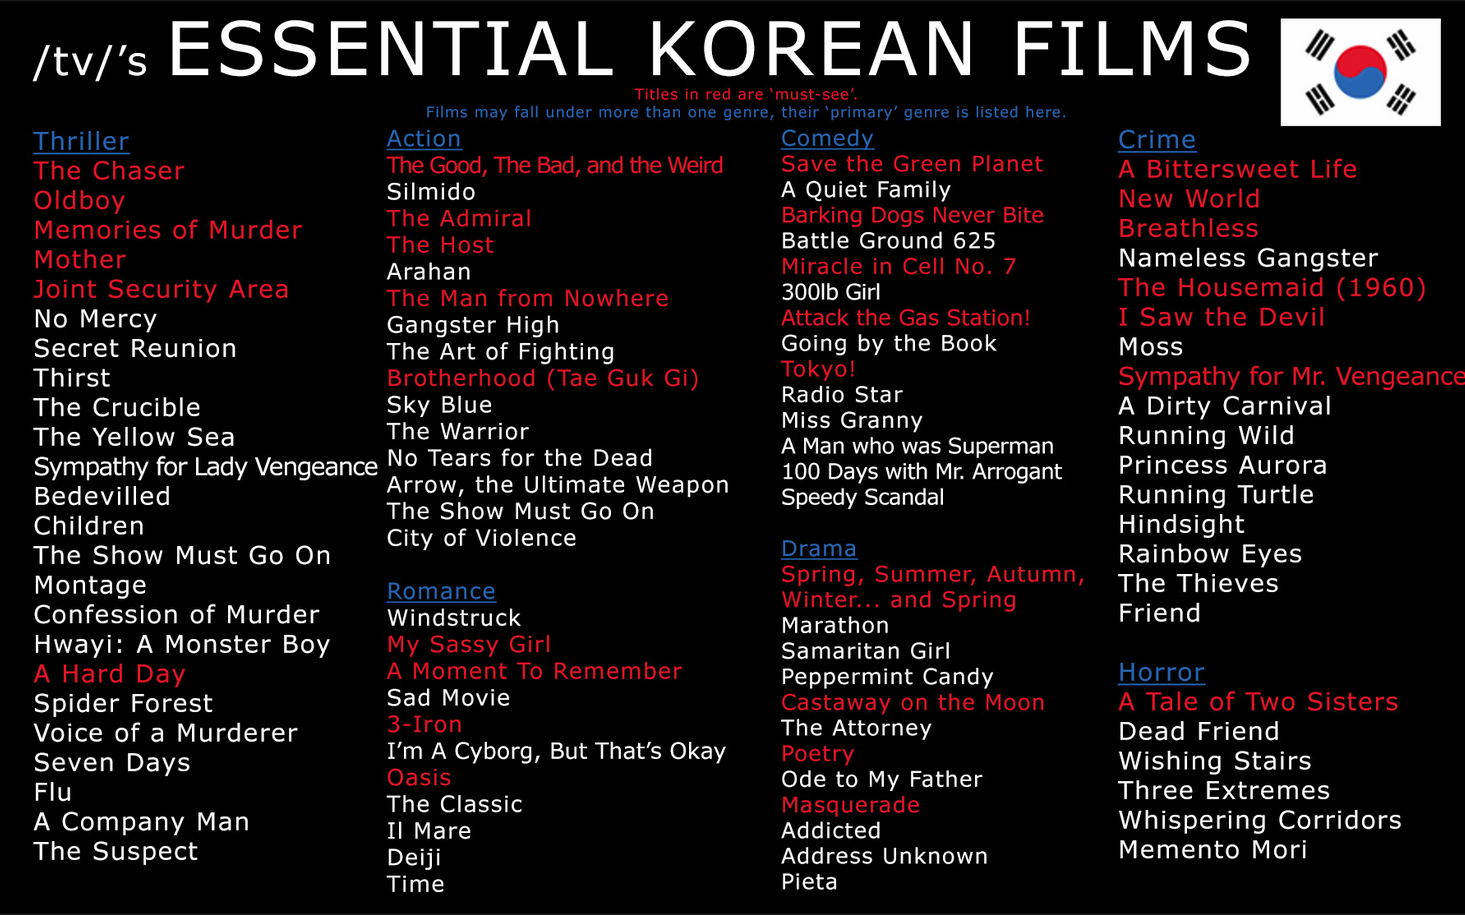 List of best Korean movies tops Reddit front page | *Things to Know